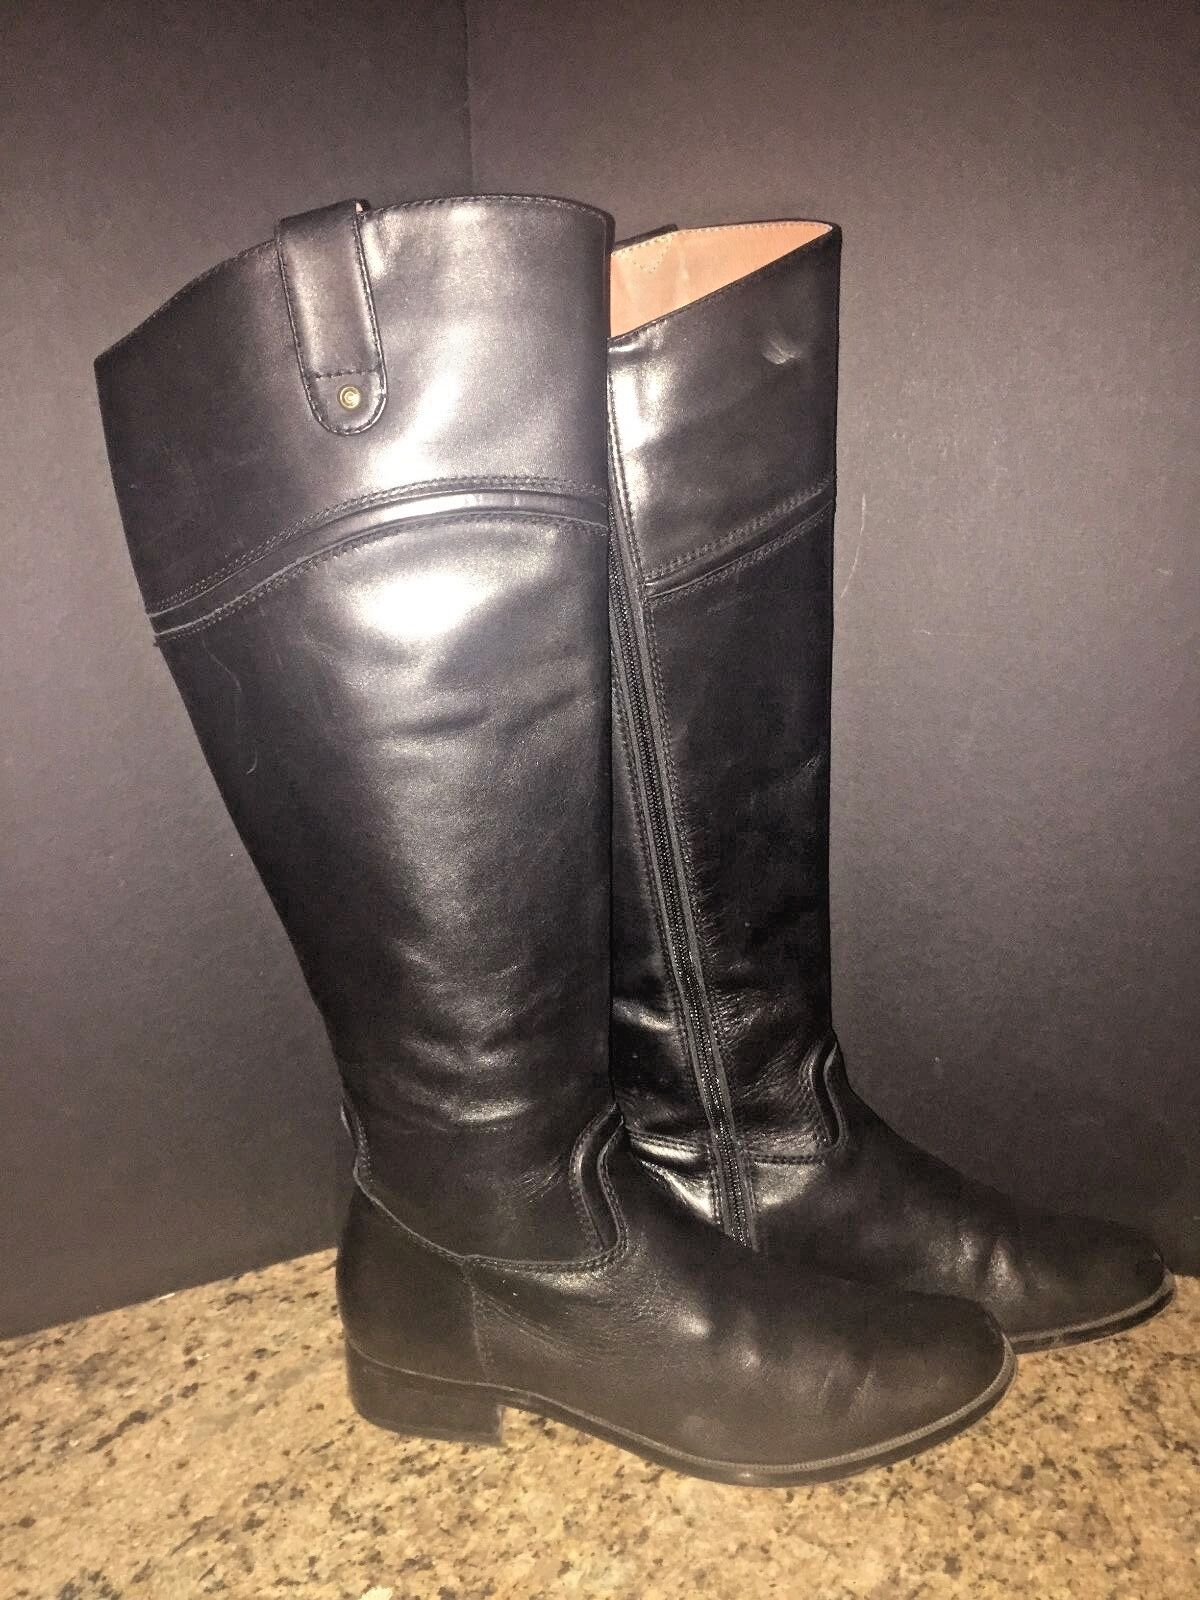 CORSO COMO STAMFORD TALL EQUESTRIAN STYLE BOOTS BLACK LEATHER KNEE KNEE KNEE HIGH-SIZE 6.5 9a979e